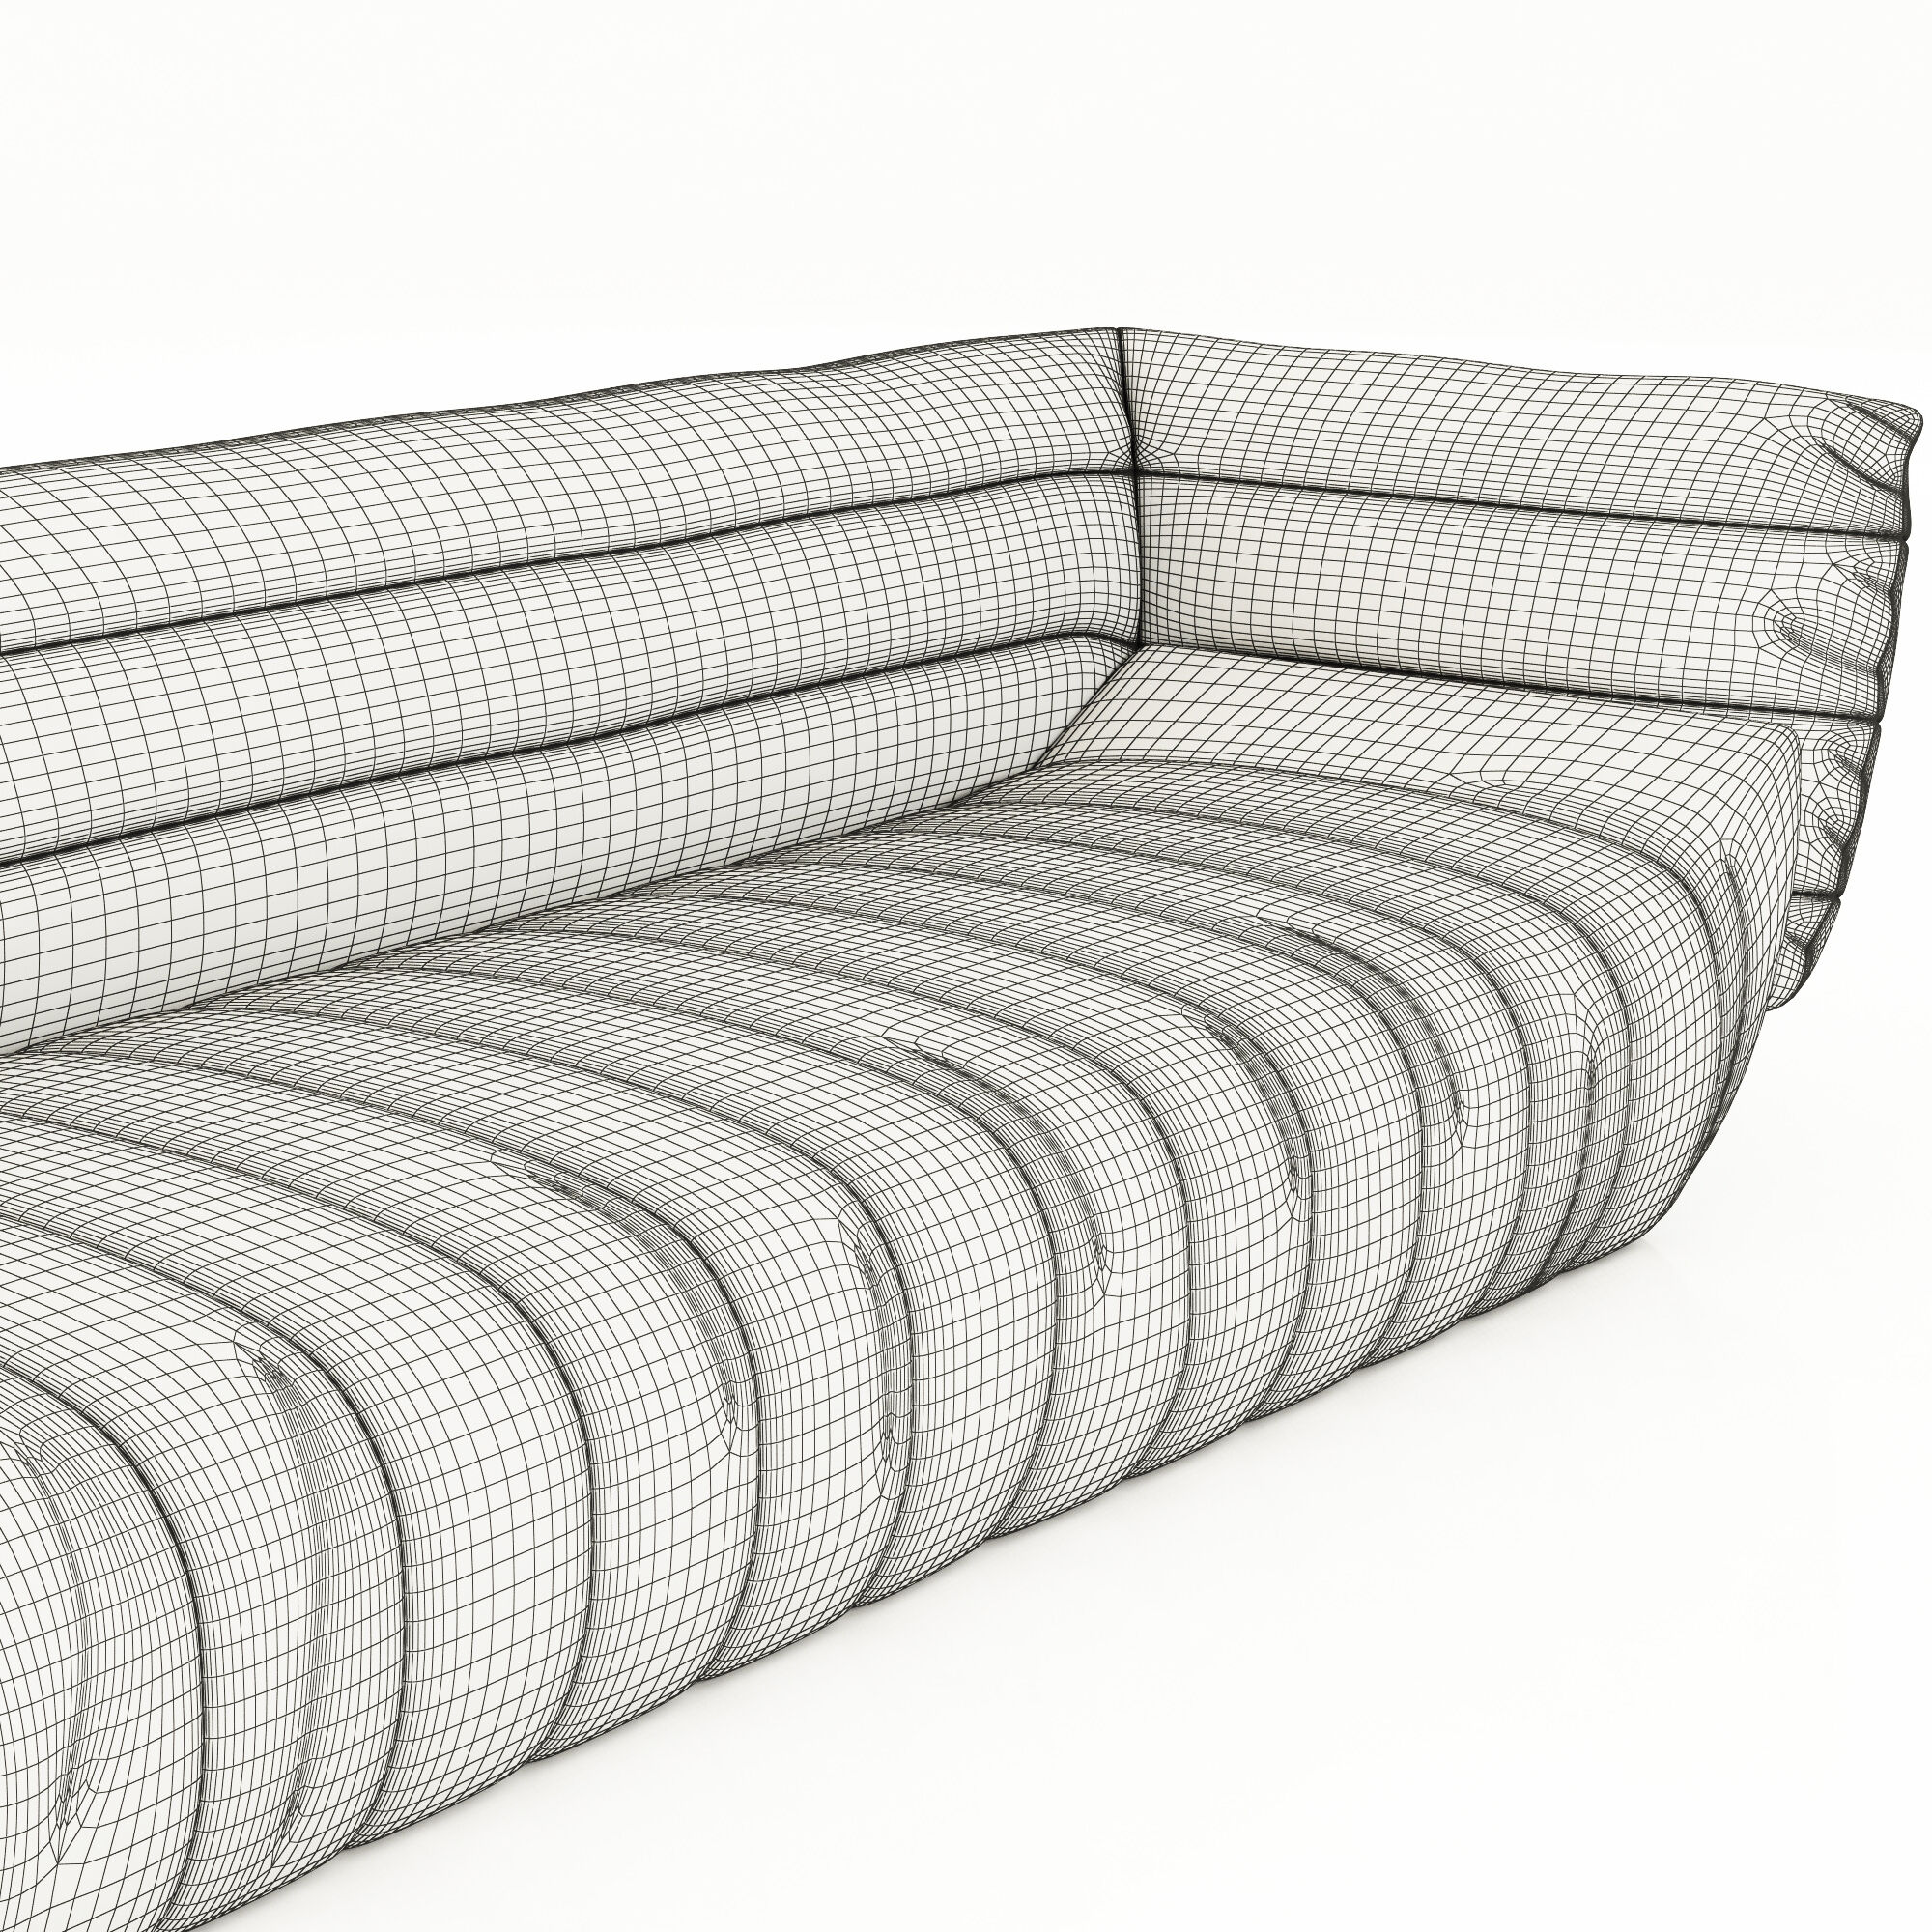 Full Size of Baxter Moon Sofa Furniture Chester Viktor Sale Italy List Paola Navone Ez Living Tactile Criteria Collection Couch Casablanca 3d Model Download Weiß Grau Sofa Baxter Sofa